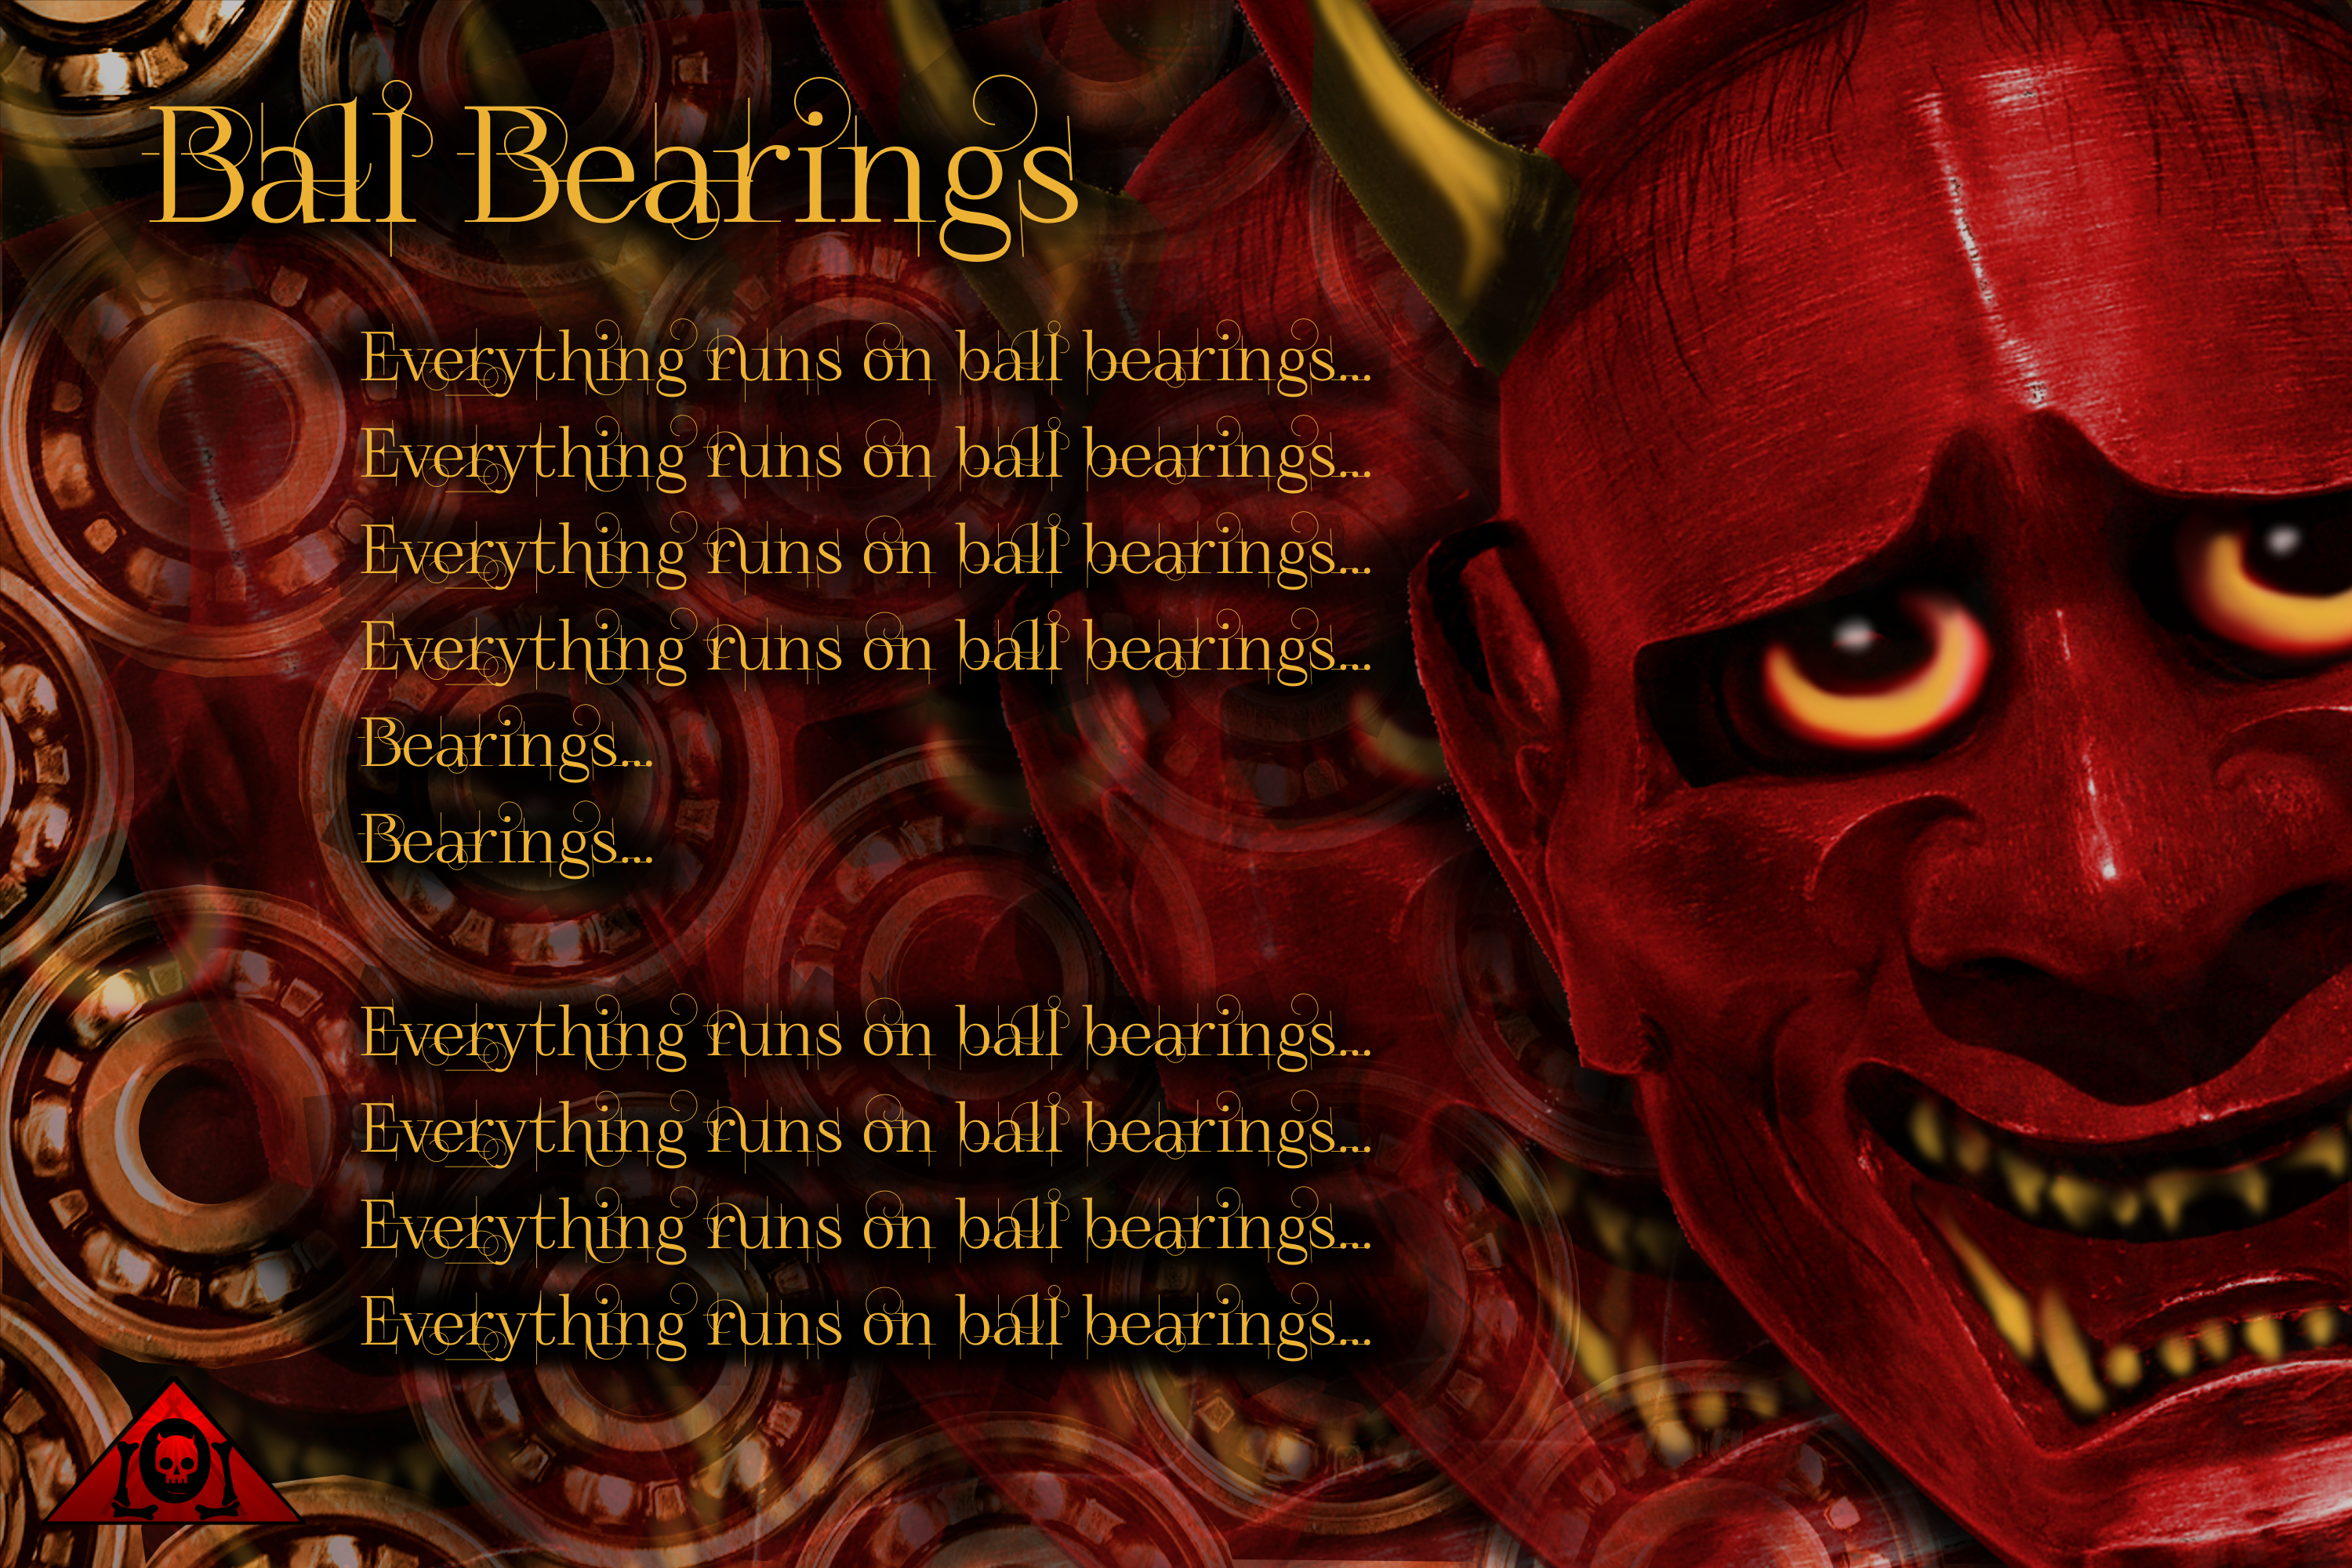 Ball Bearings Lyrics Sheet